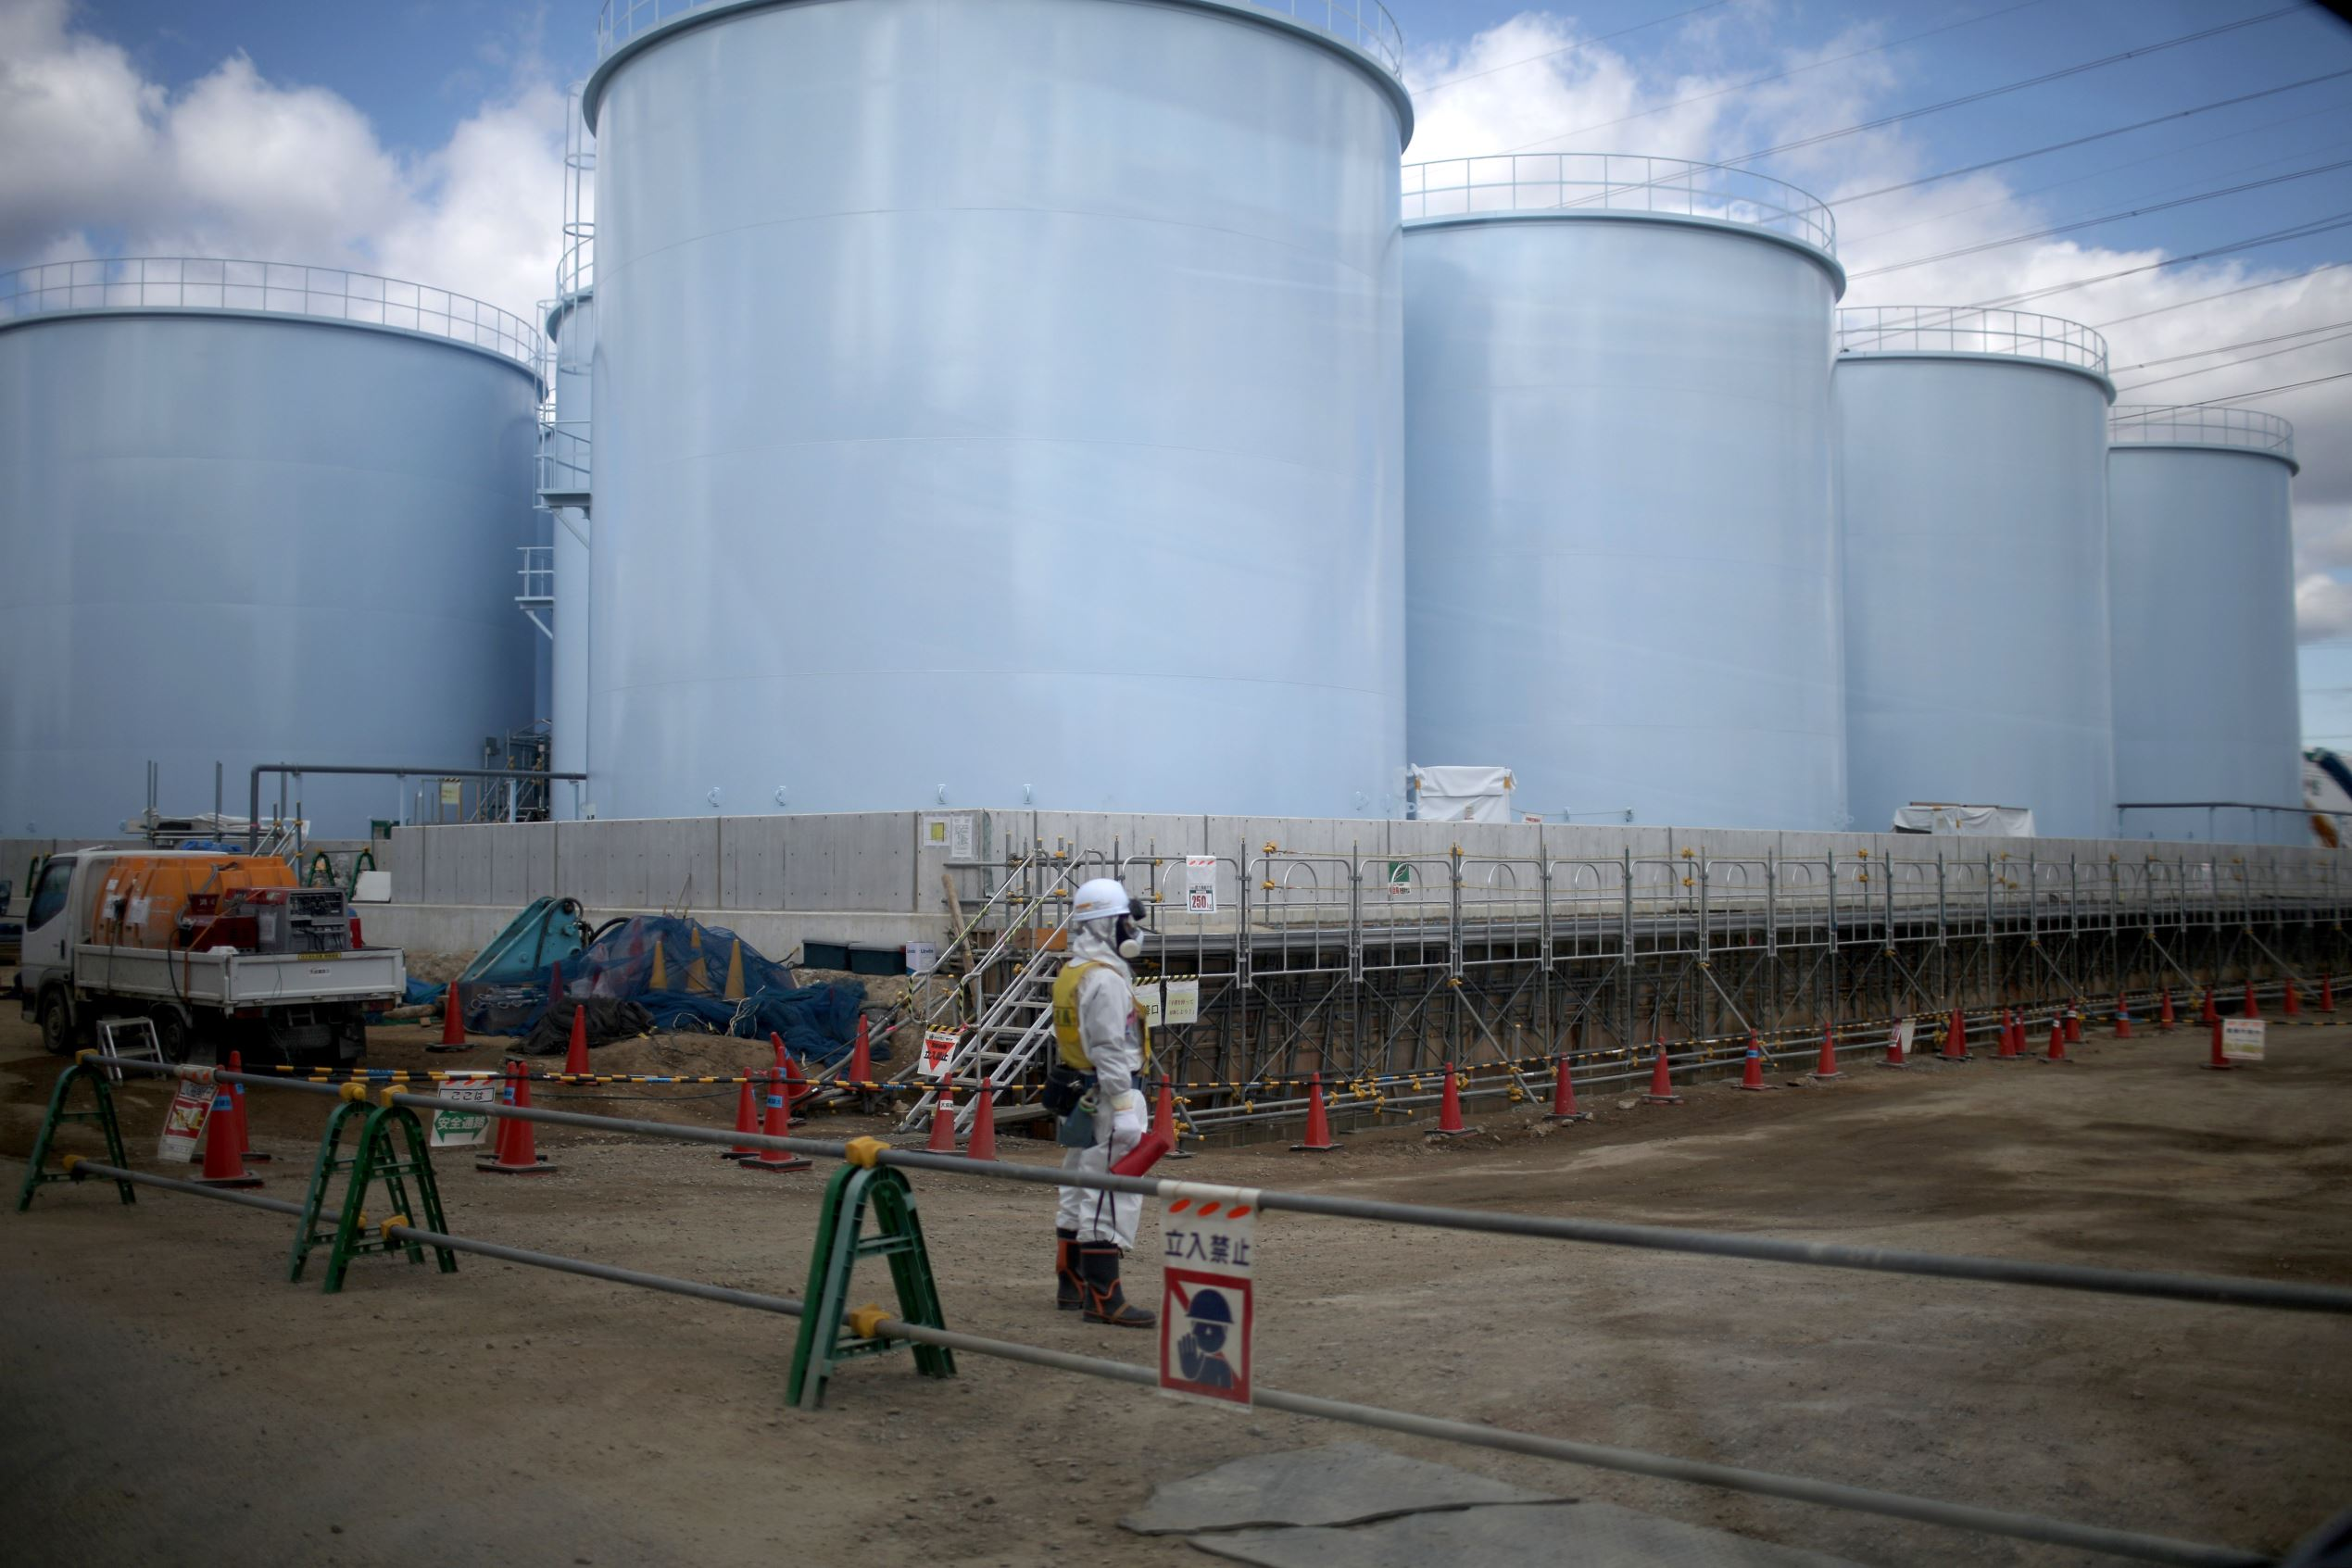 OKUMA, JAPAN - FEBRUARY 25: A general view of tanks holding radiation contaminated water at the Tokyo Electric Power Co.'s embattled Fukushima Daiichi nuclear power plant on February 25, 2016 in Okuma, Japan.